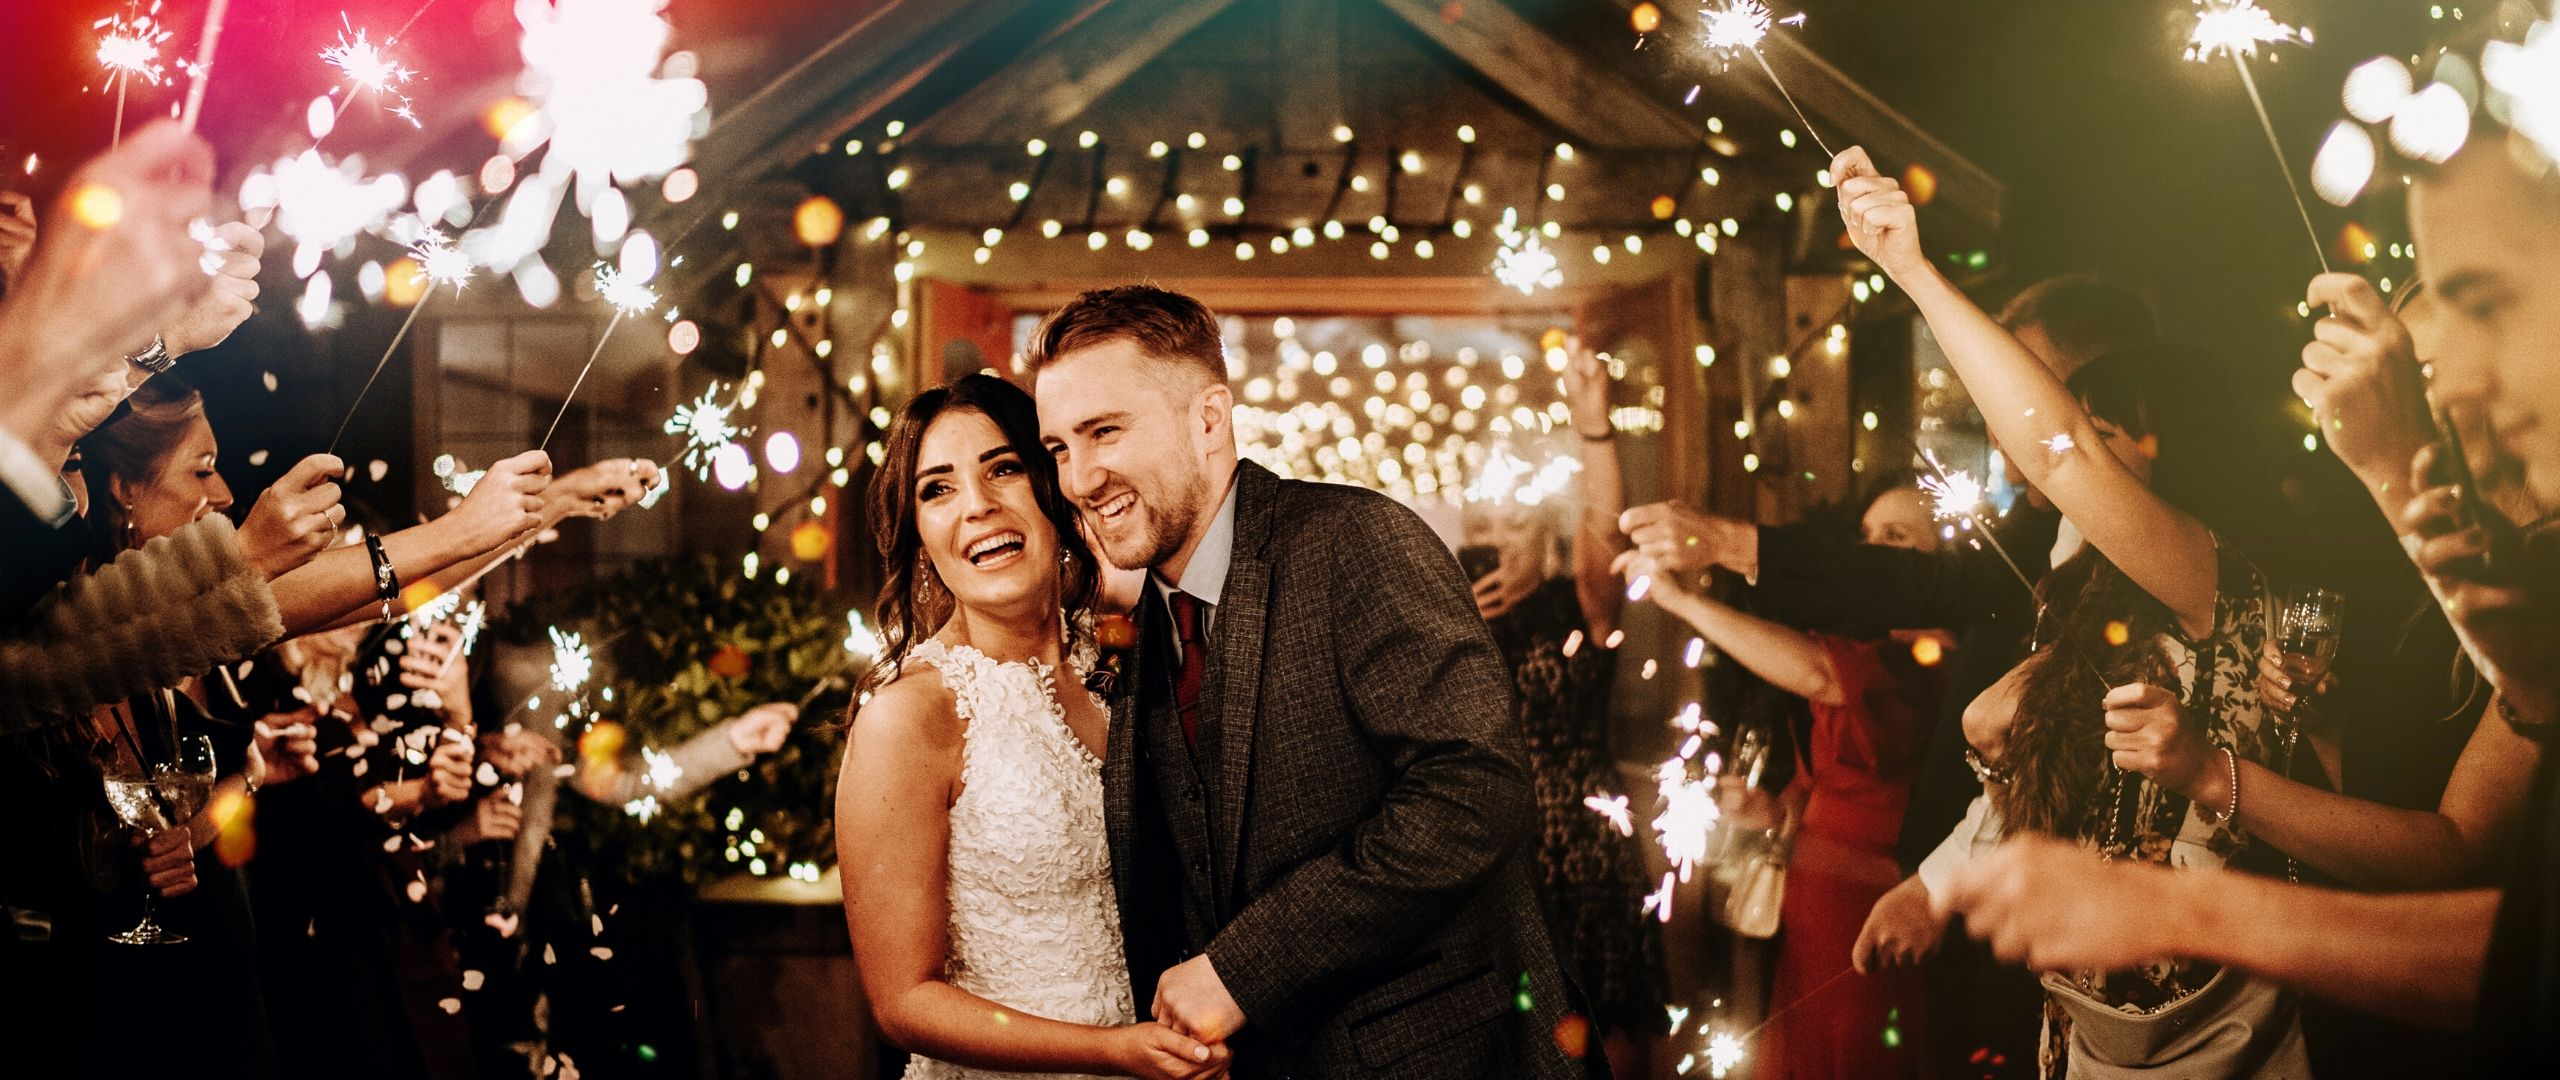 Nikita and Luke light up the sky on their special day